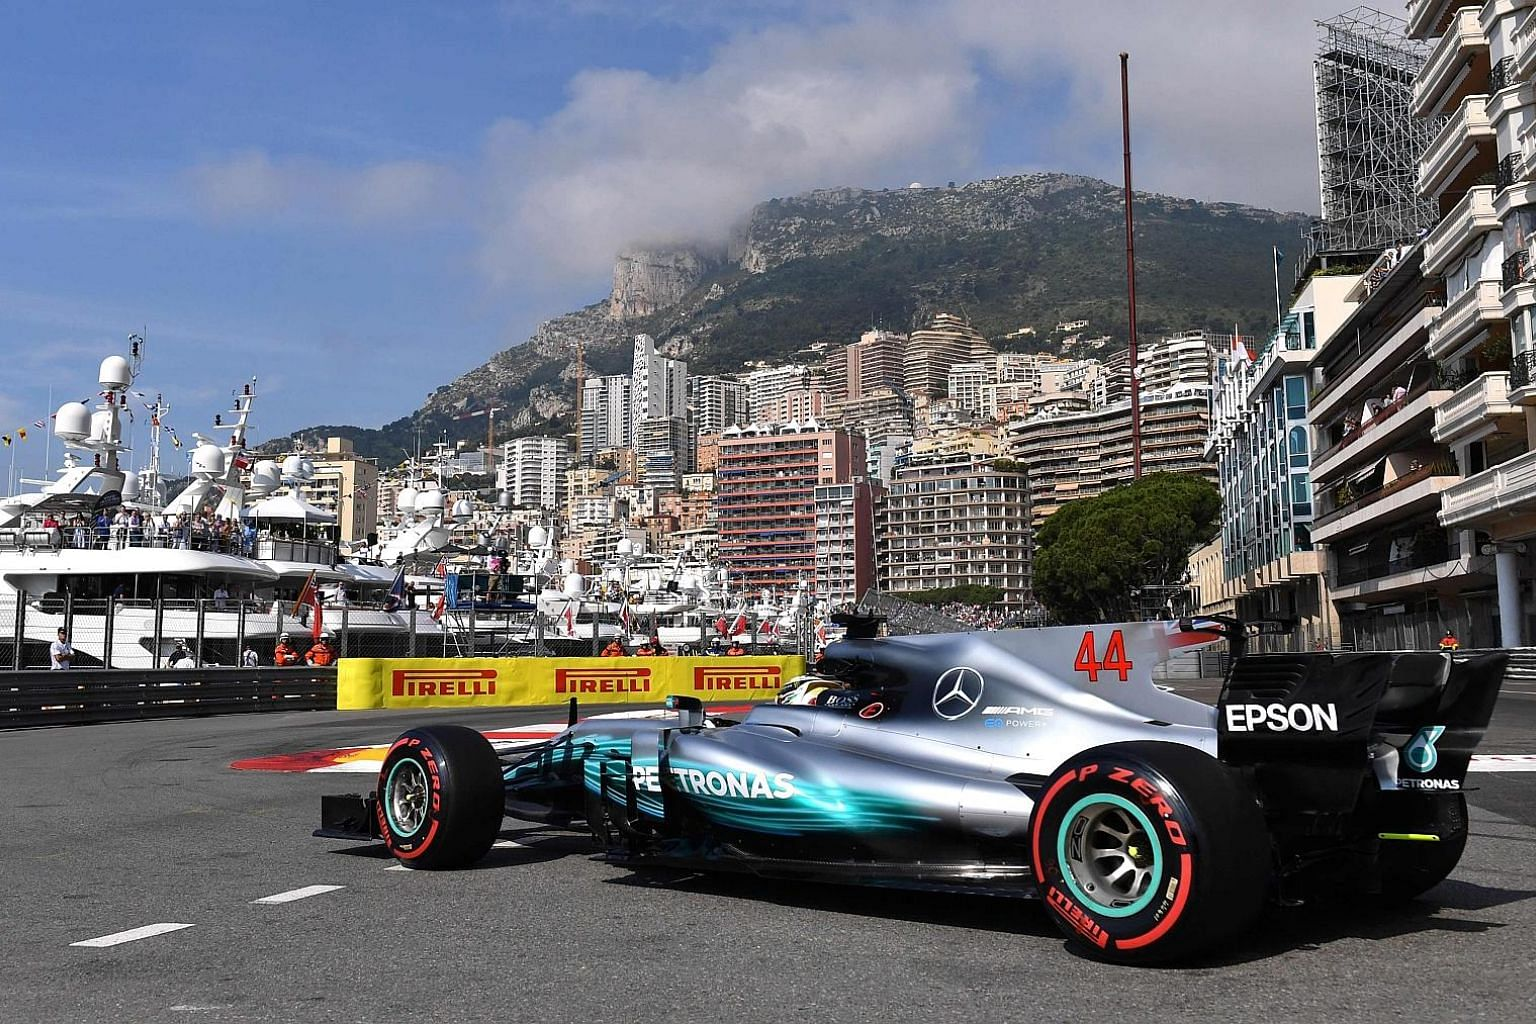 Lewis Hamilton on the Monaco circuit yesterday, when he and Valtteri Bottas finished eighth and 10th respectively in the second practice session, which was dominated by Ferrari driver Sebastian Vettel.